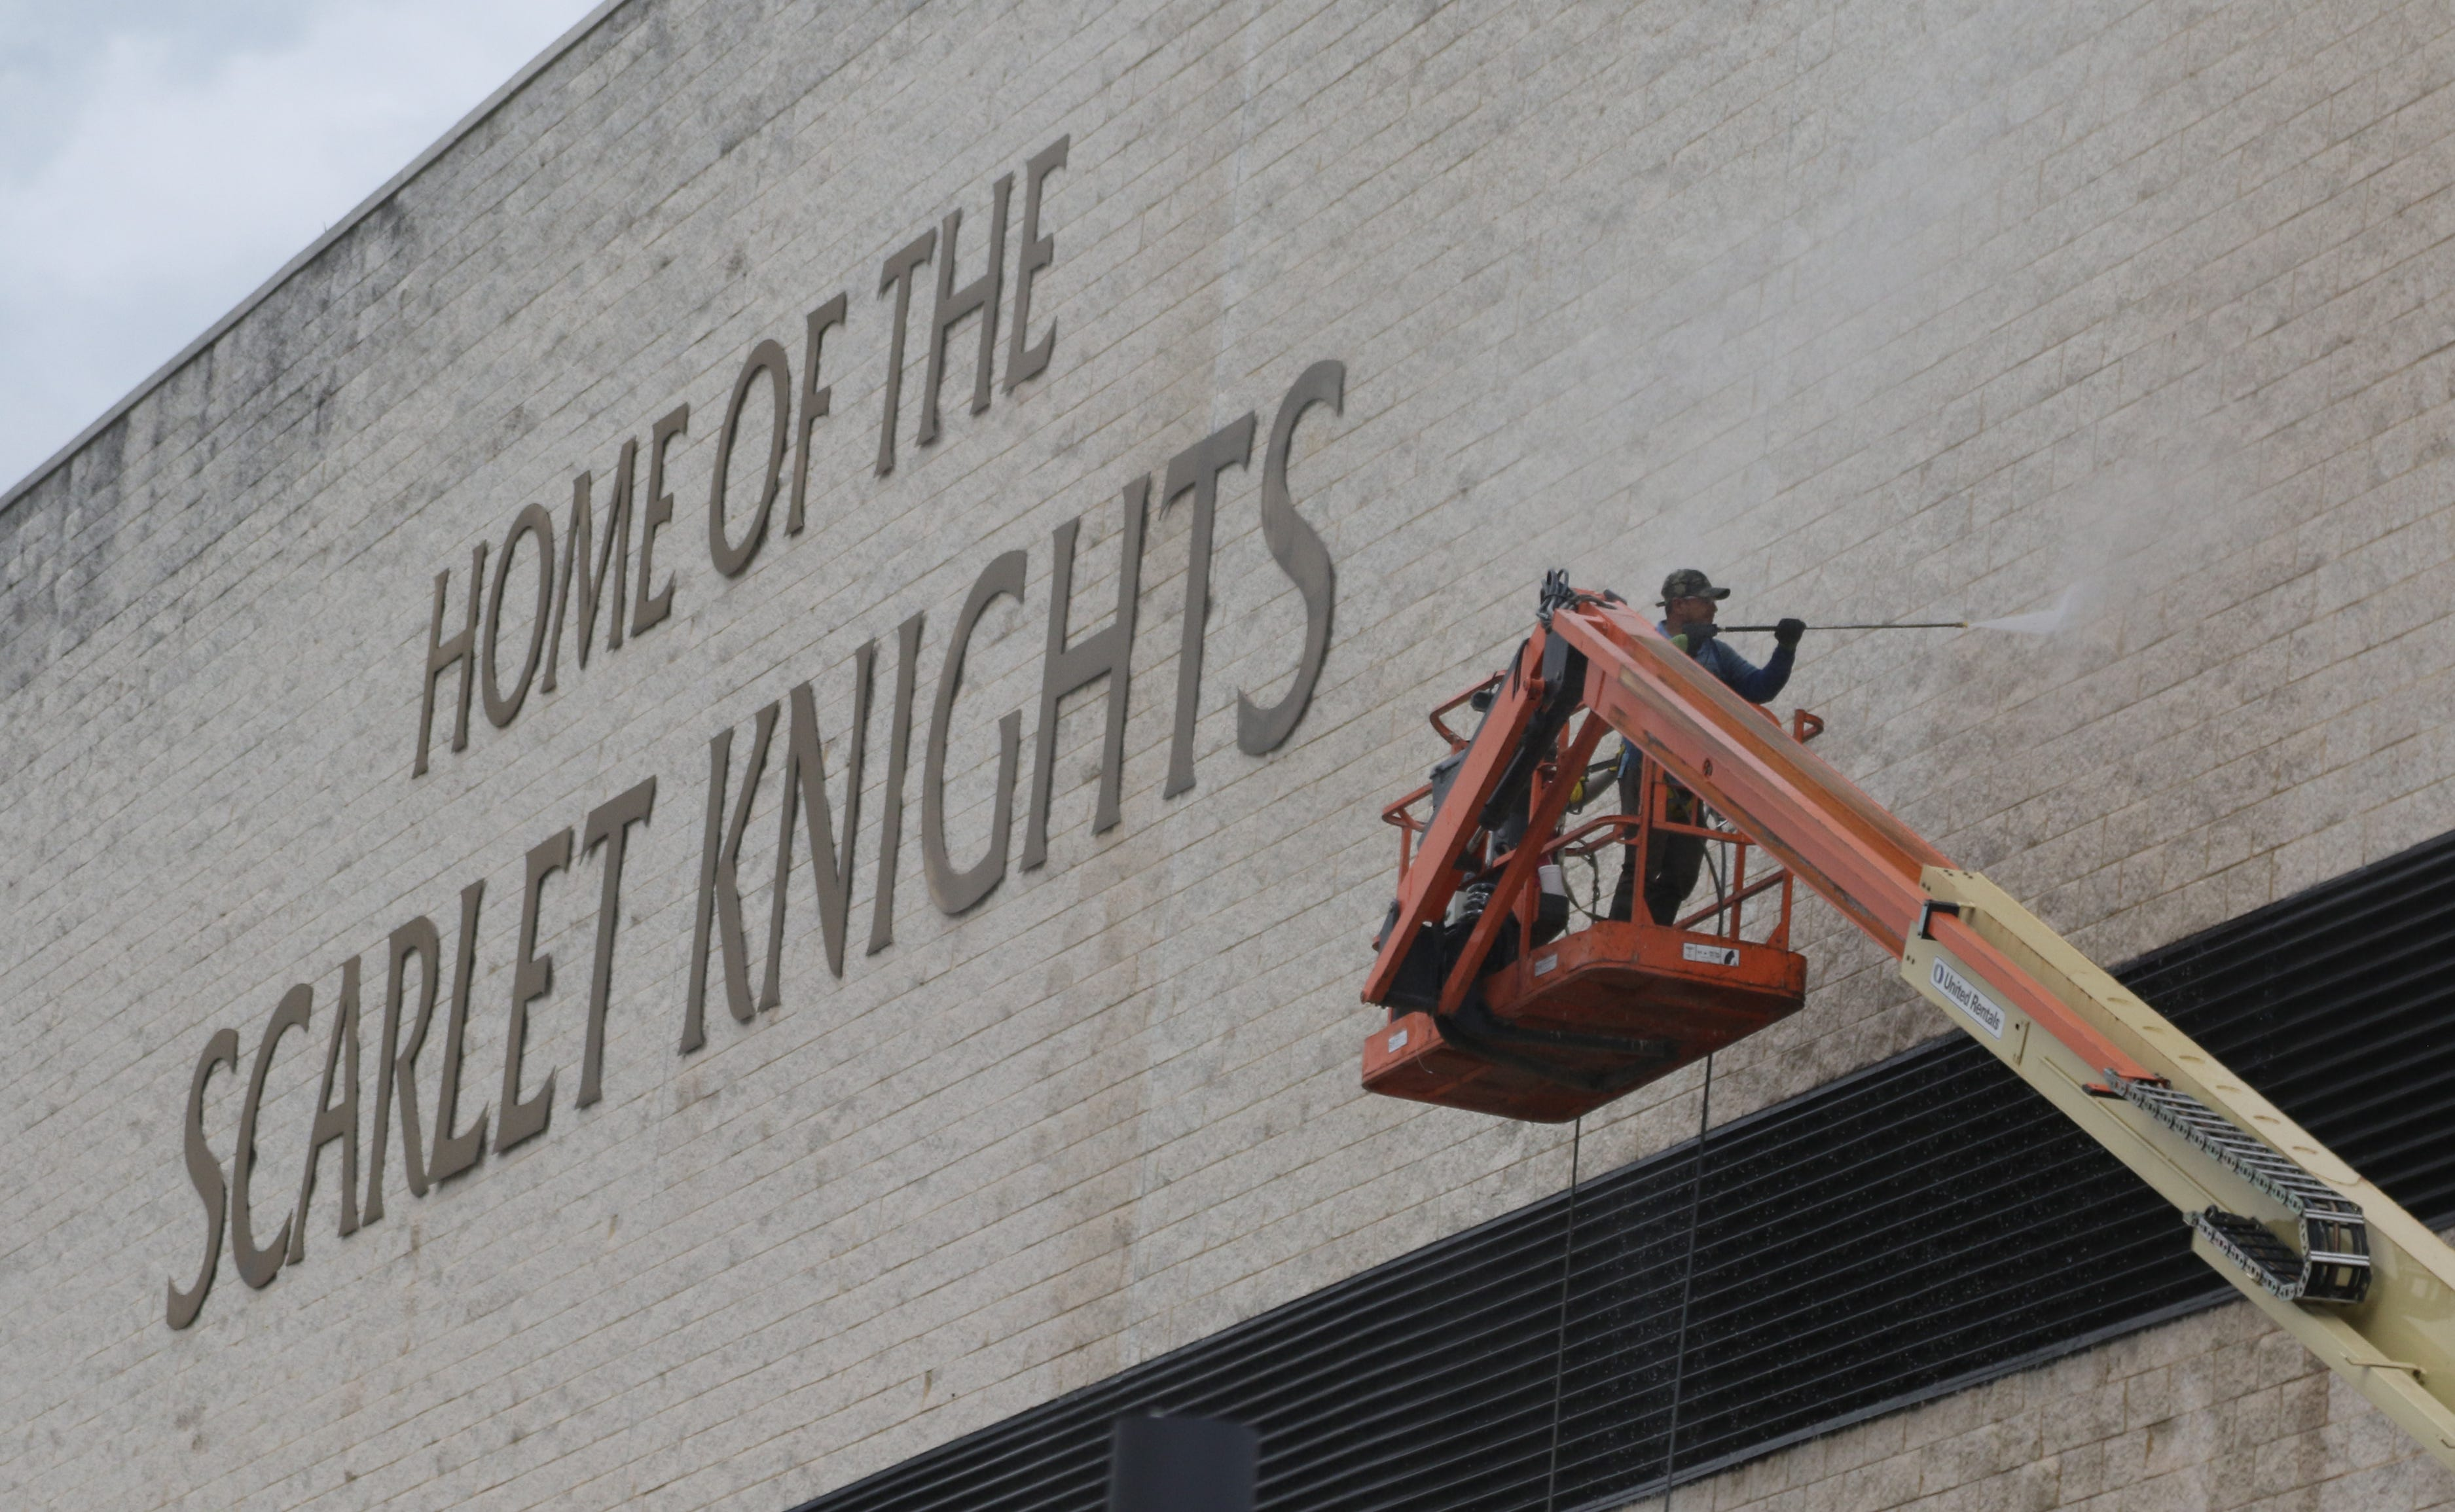 Cleaning the exterior of the Rutgers Athletic Center, one of the athletic department's older buildings as opposed to the two new athletic facilities on the campus of Rutgers University.